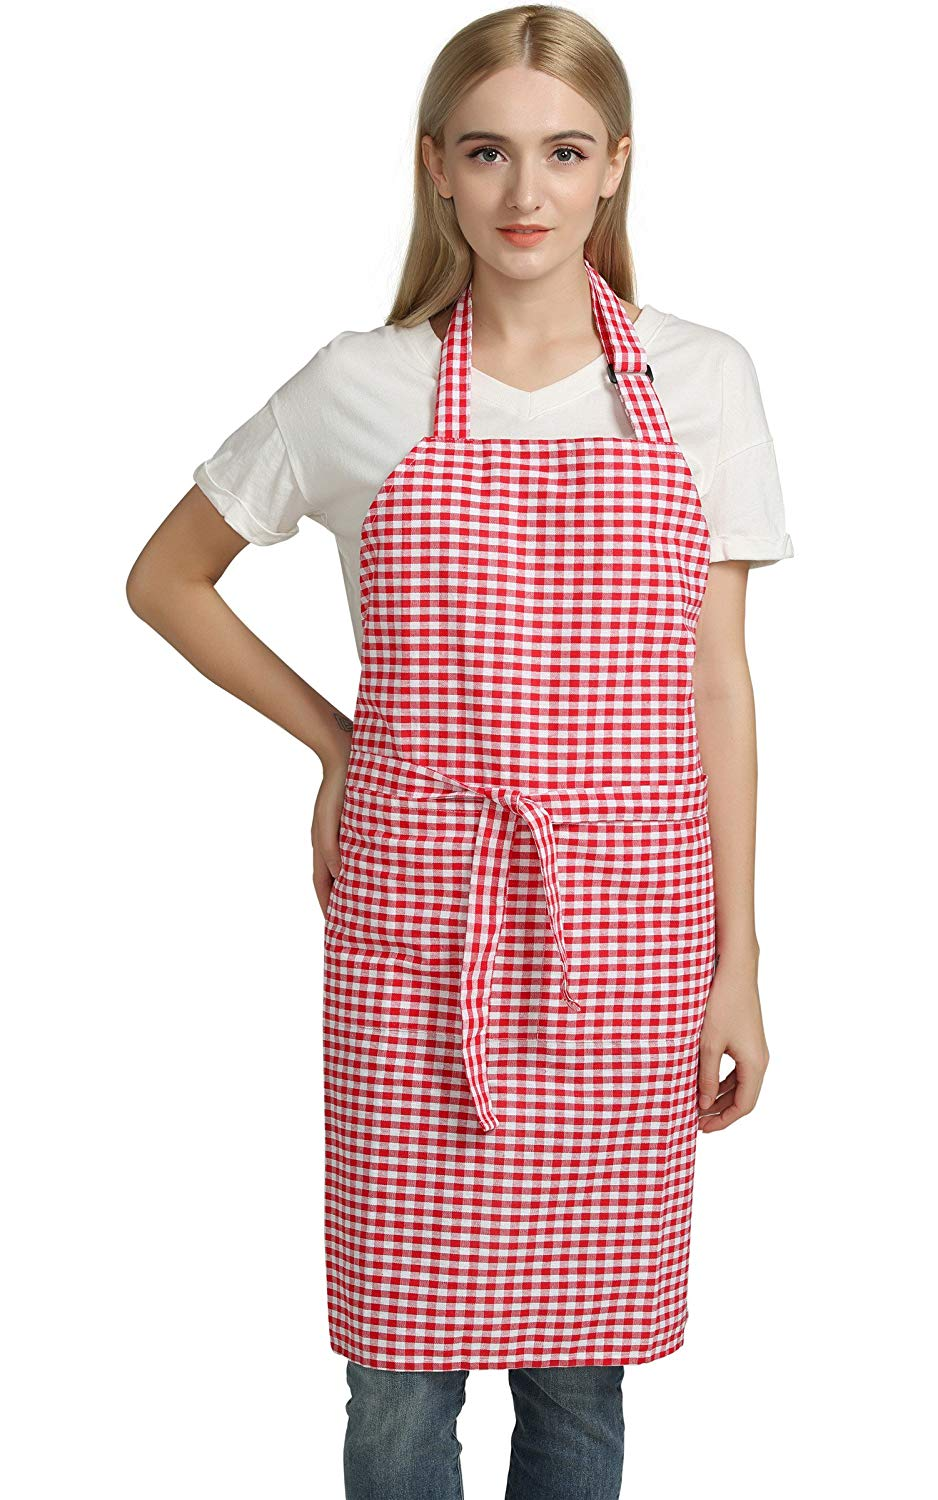 Vintage Gingham Kitchen Aprons Chef Bib Canvas Aprons Christmas Holiday Home Decorative 100% Pure Cotton Aprons in Large Size with Pockets with Pockets by Jennice House(Red)